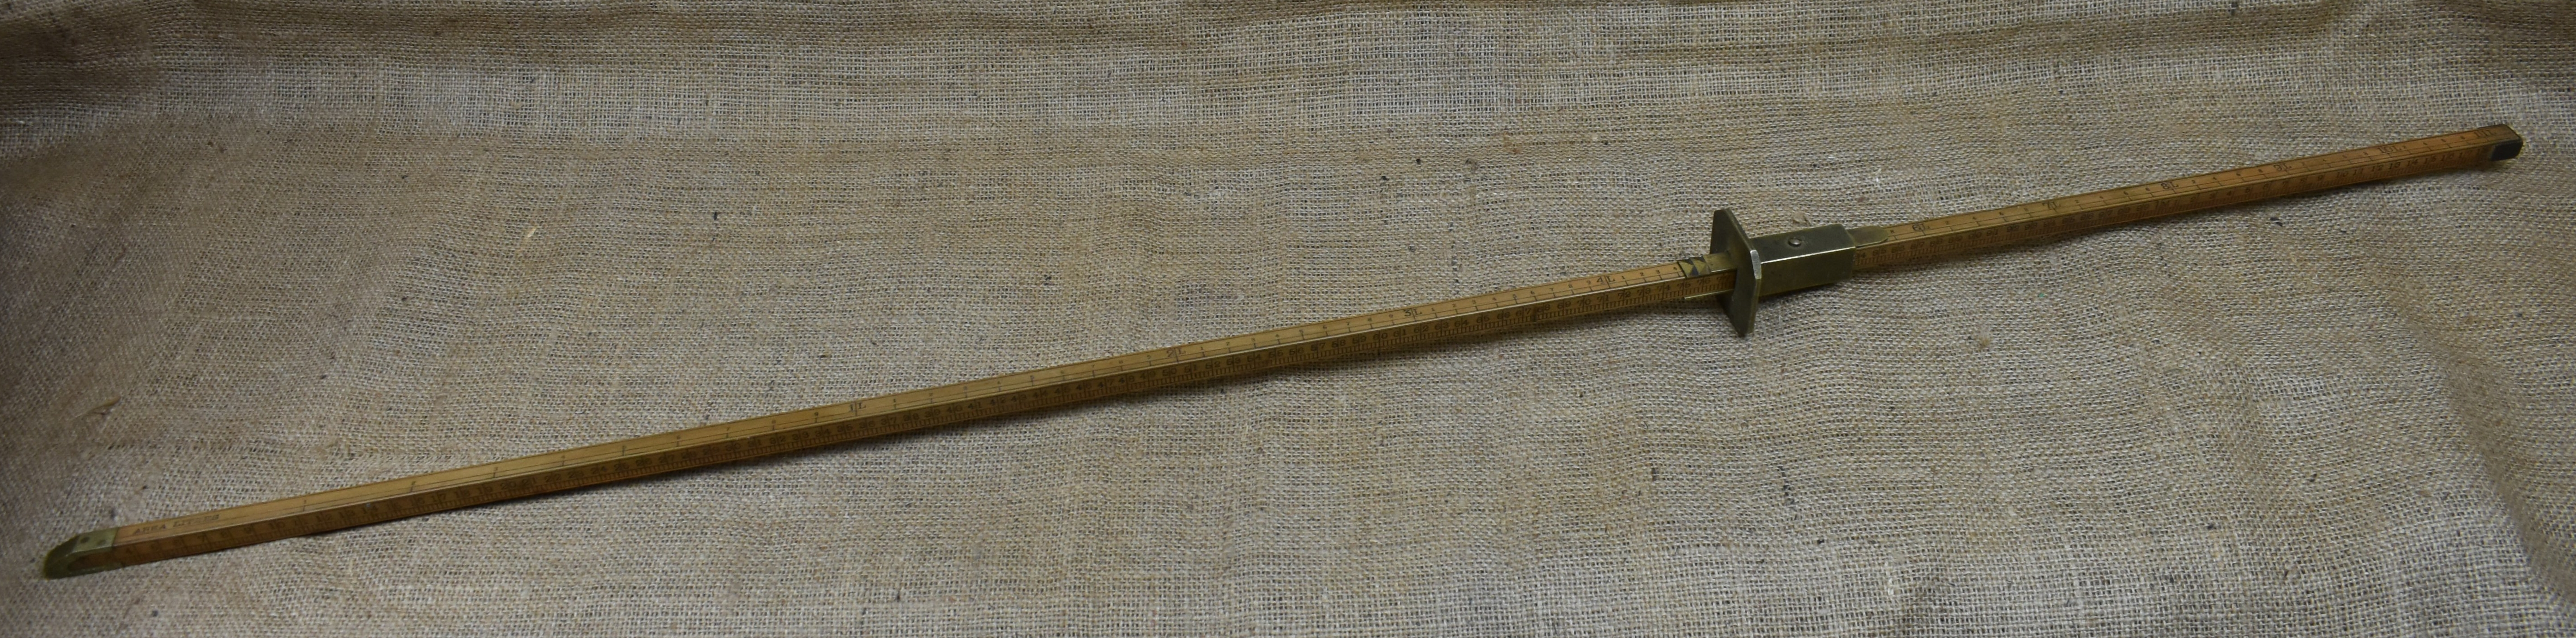 1.2m bung rod by Bentley & Taylor, for Area Litres and Diagonal Line litres, Customs & Excise.